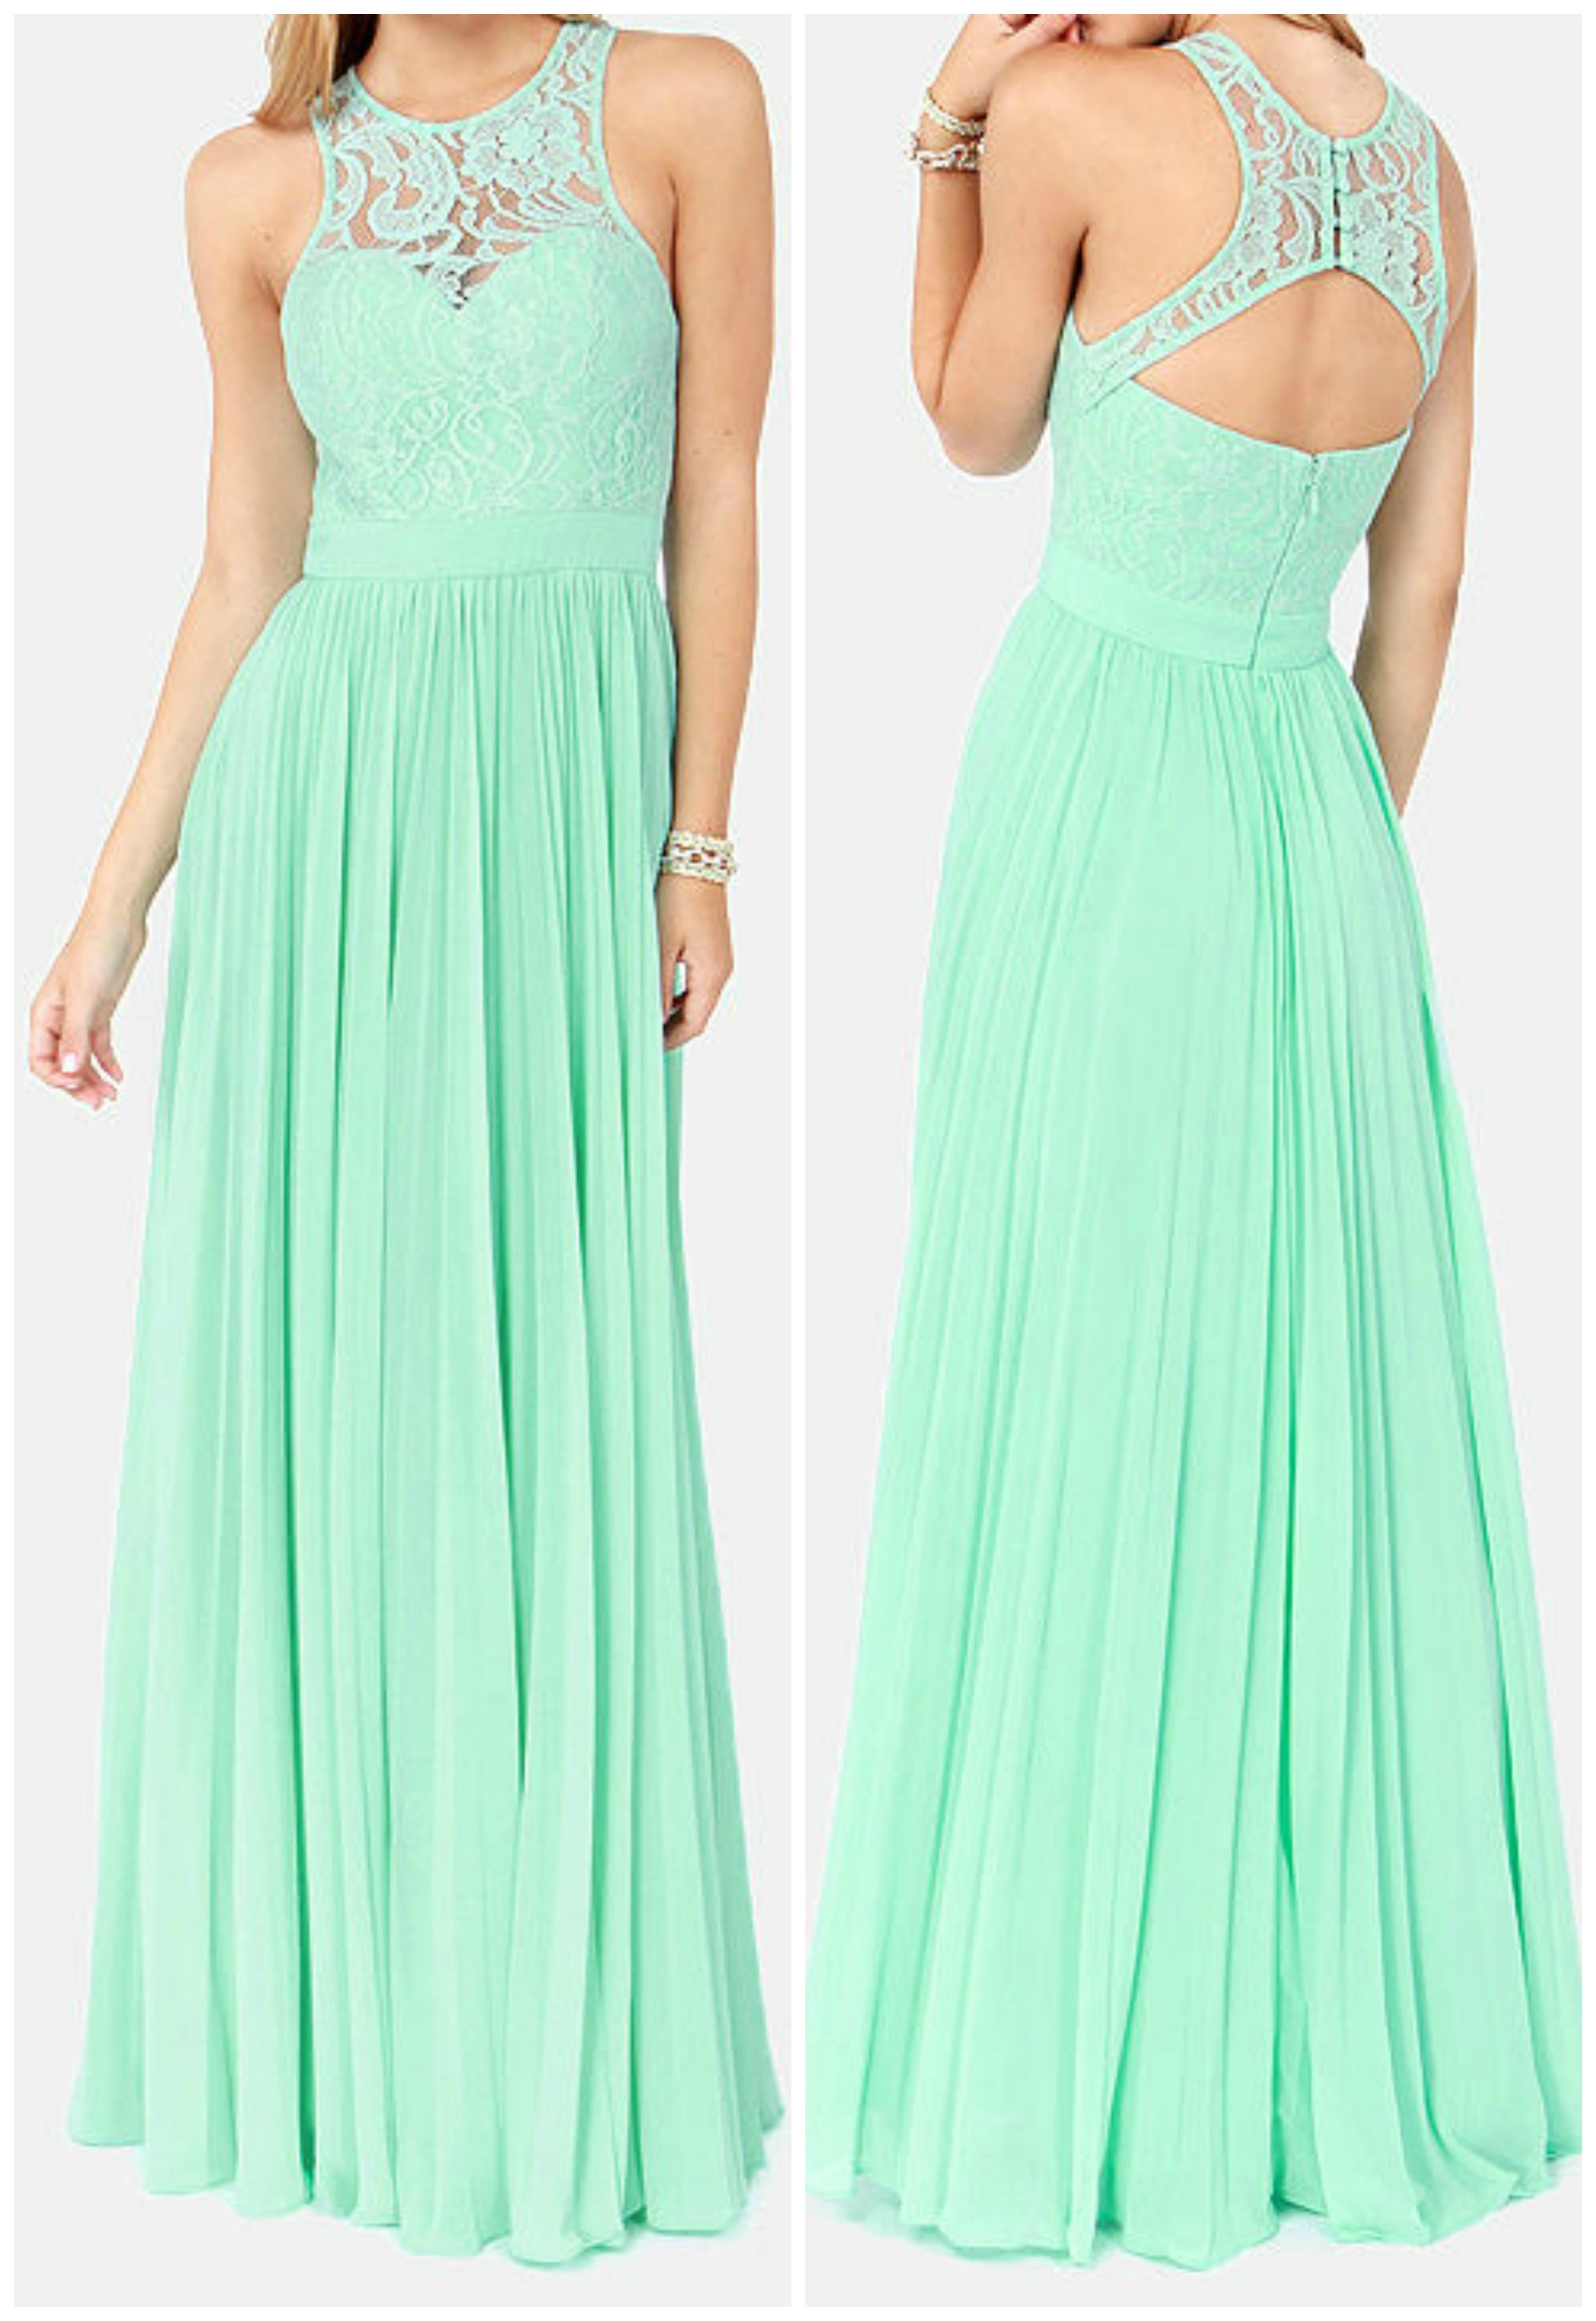 Wedding Mint Green Dresses x bariano best of both whirleds mint green lace maxi dress in love with this for my bridesmaids prom i